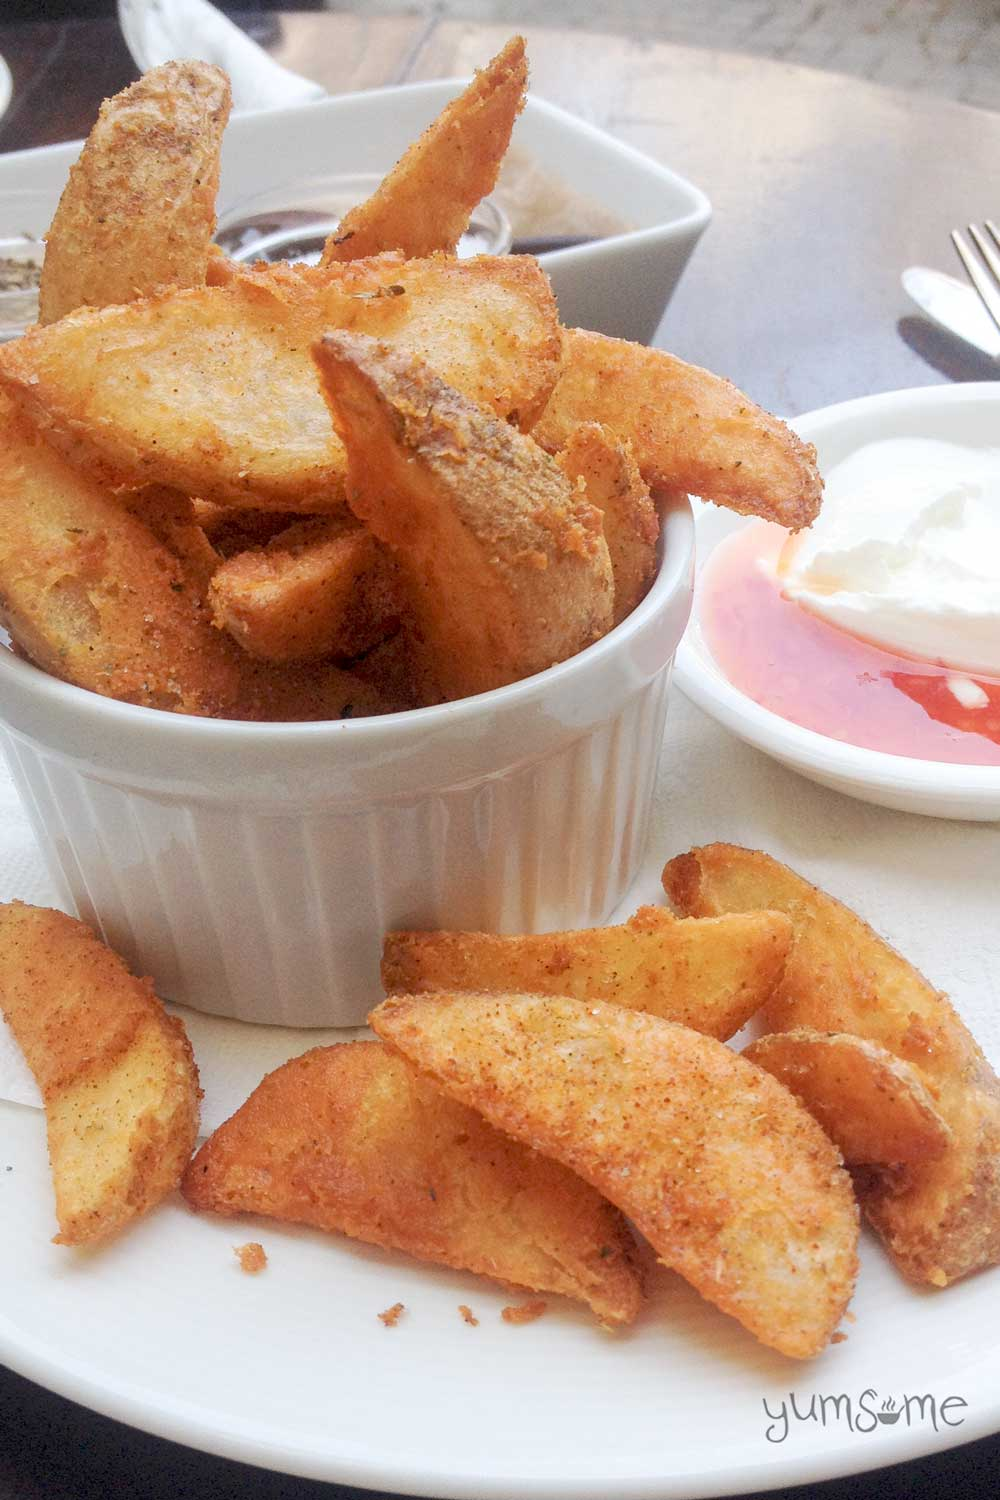 Potato wedges with veganaise and chilli sauce.